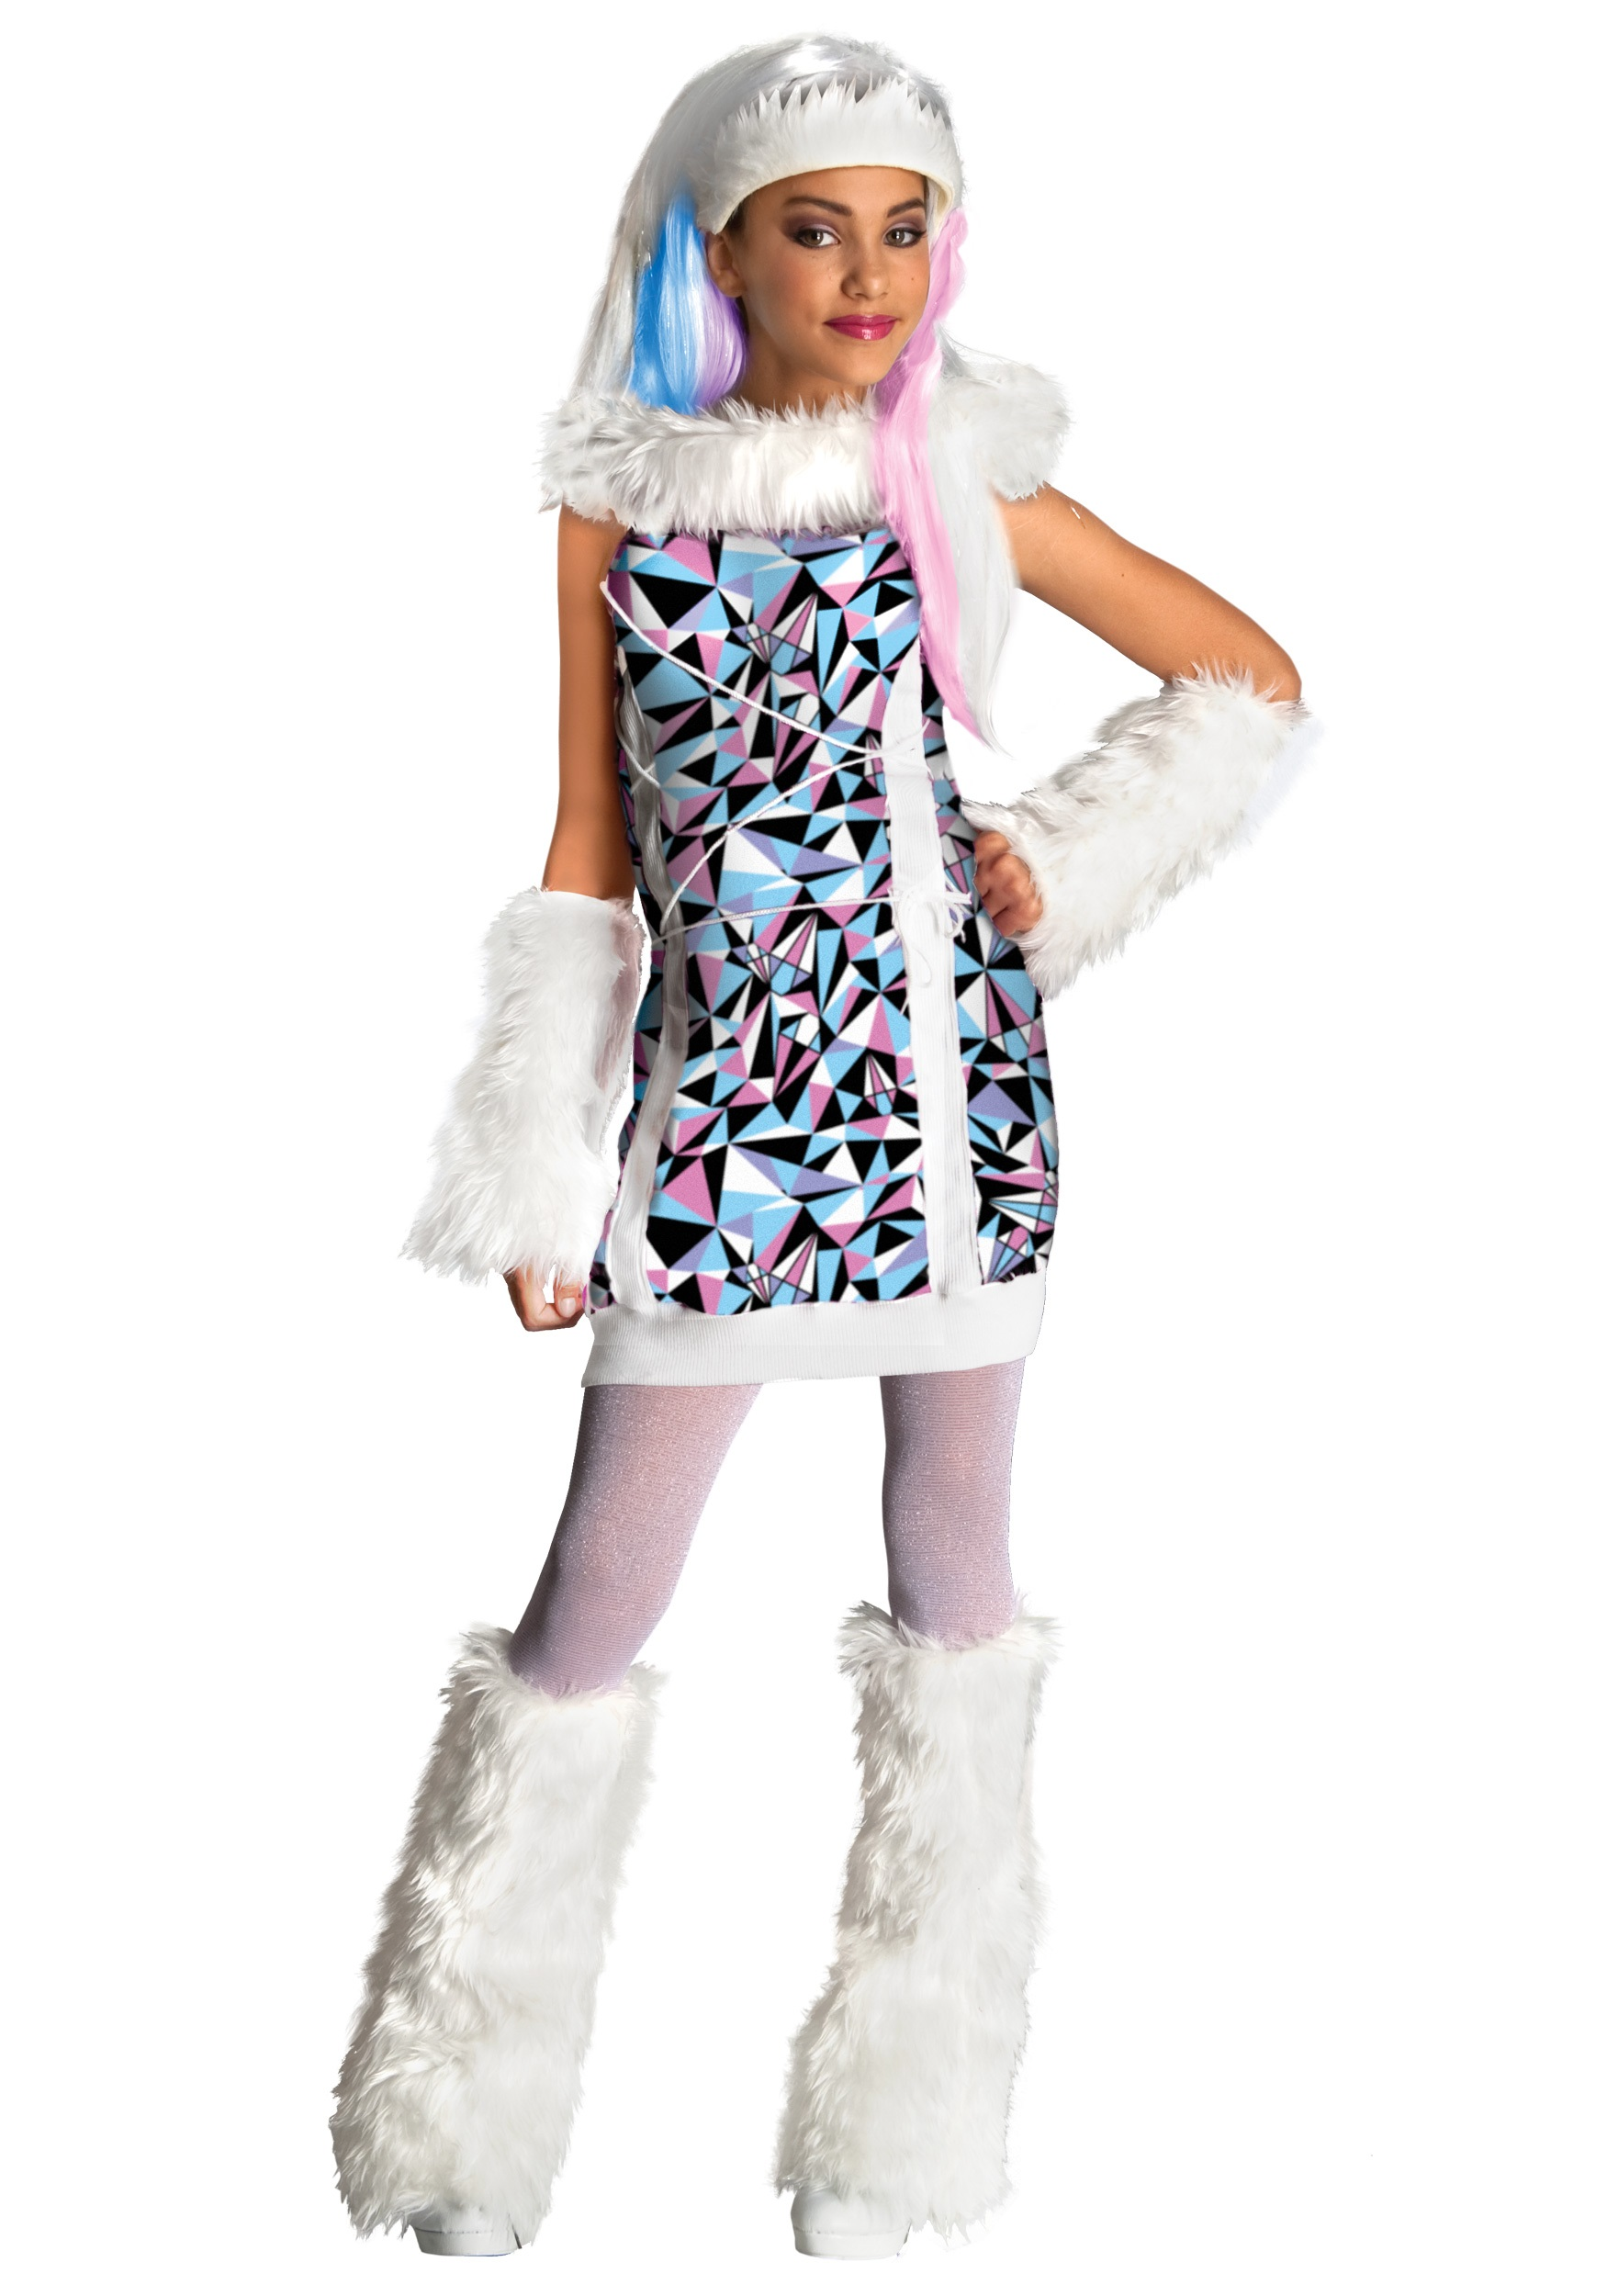 Kids Abbey Bominable Costume  sc 1 st  Halloween Costumes & Monster High Costumes u0026 Accesories - HalloweenCostumes.com